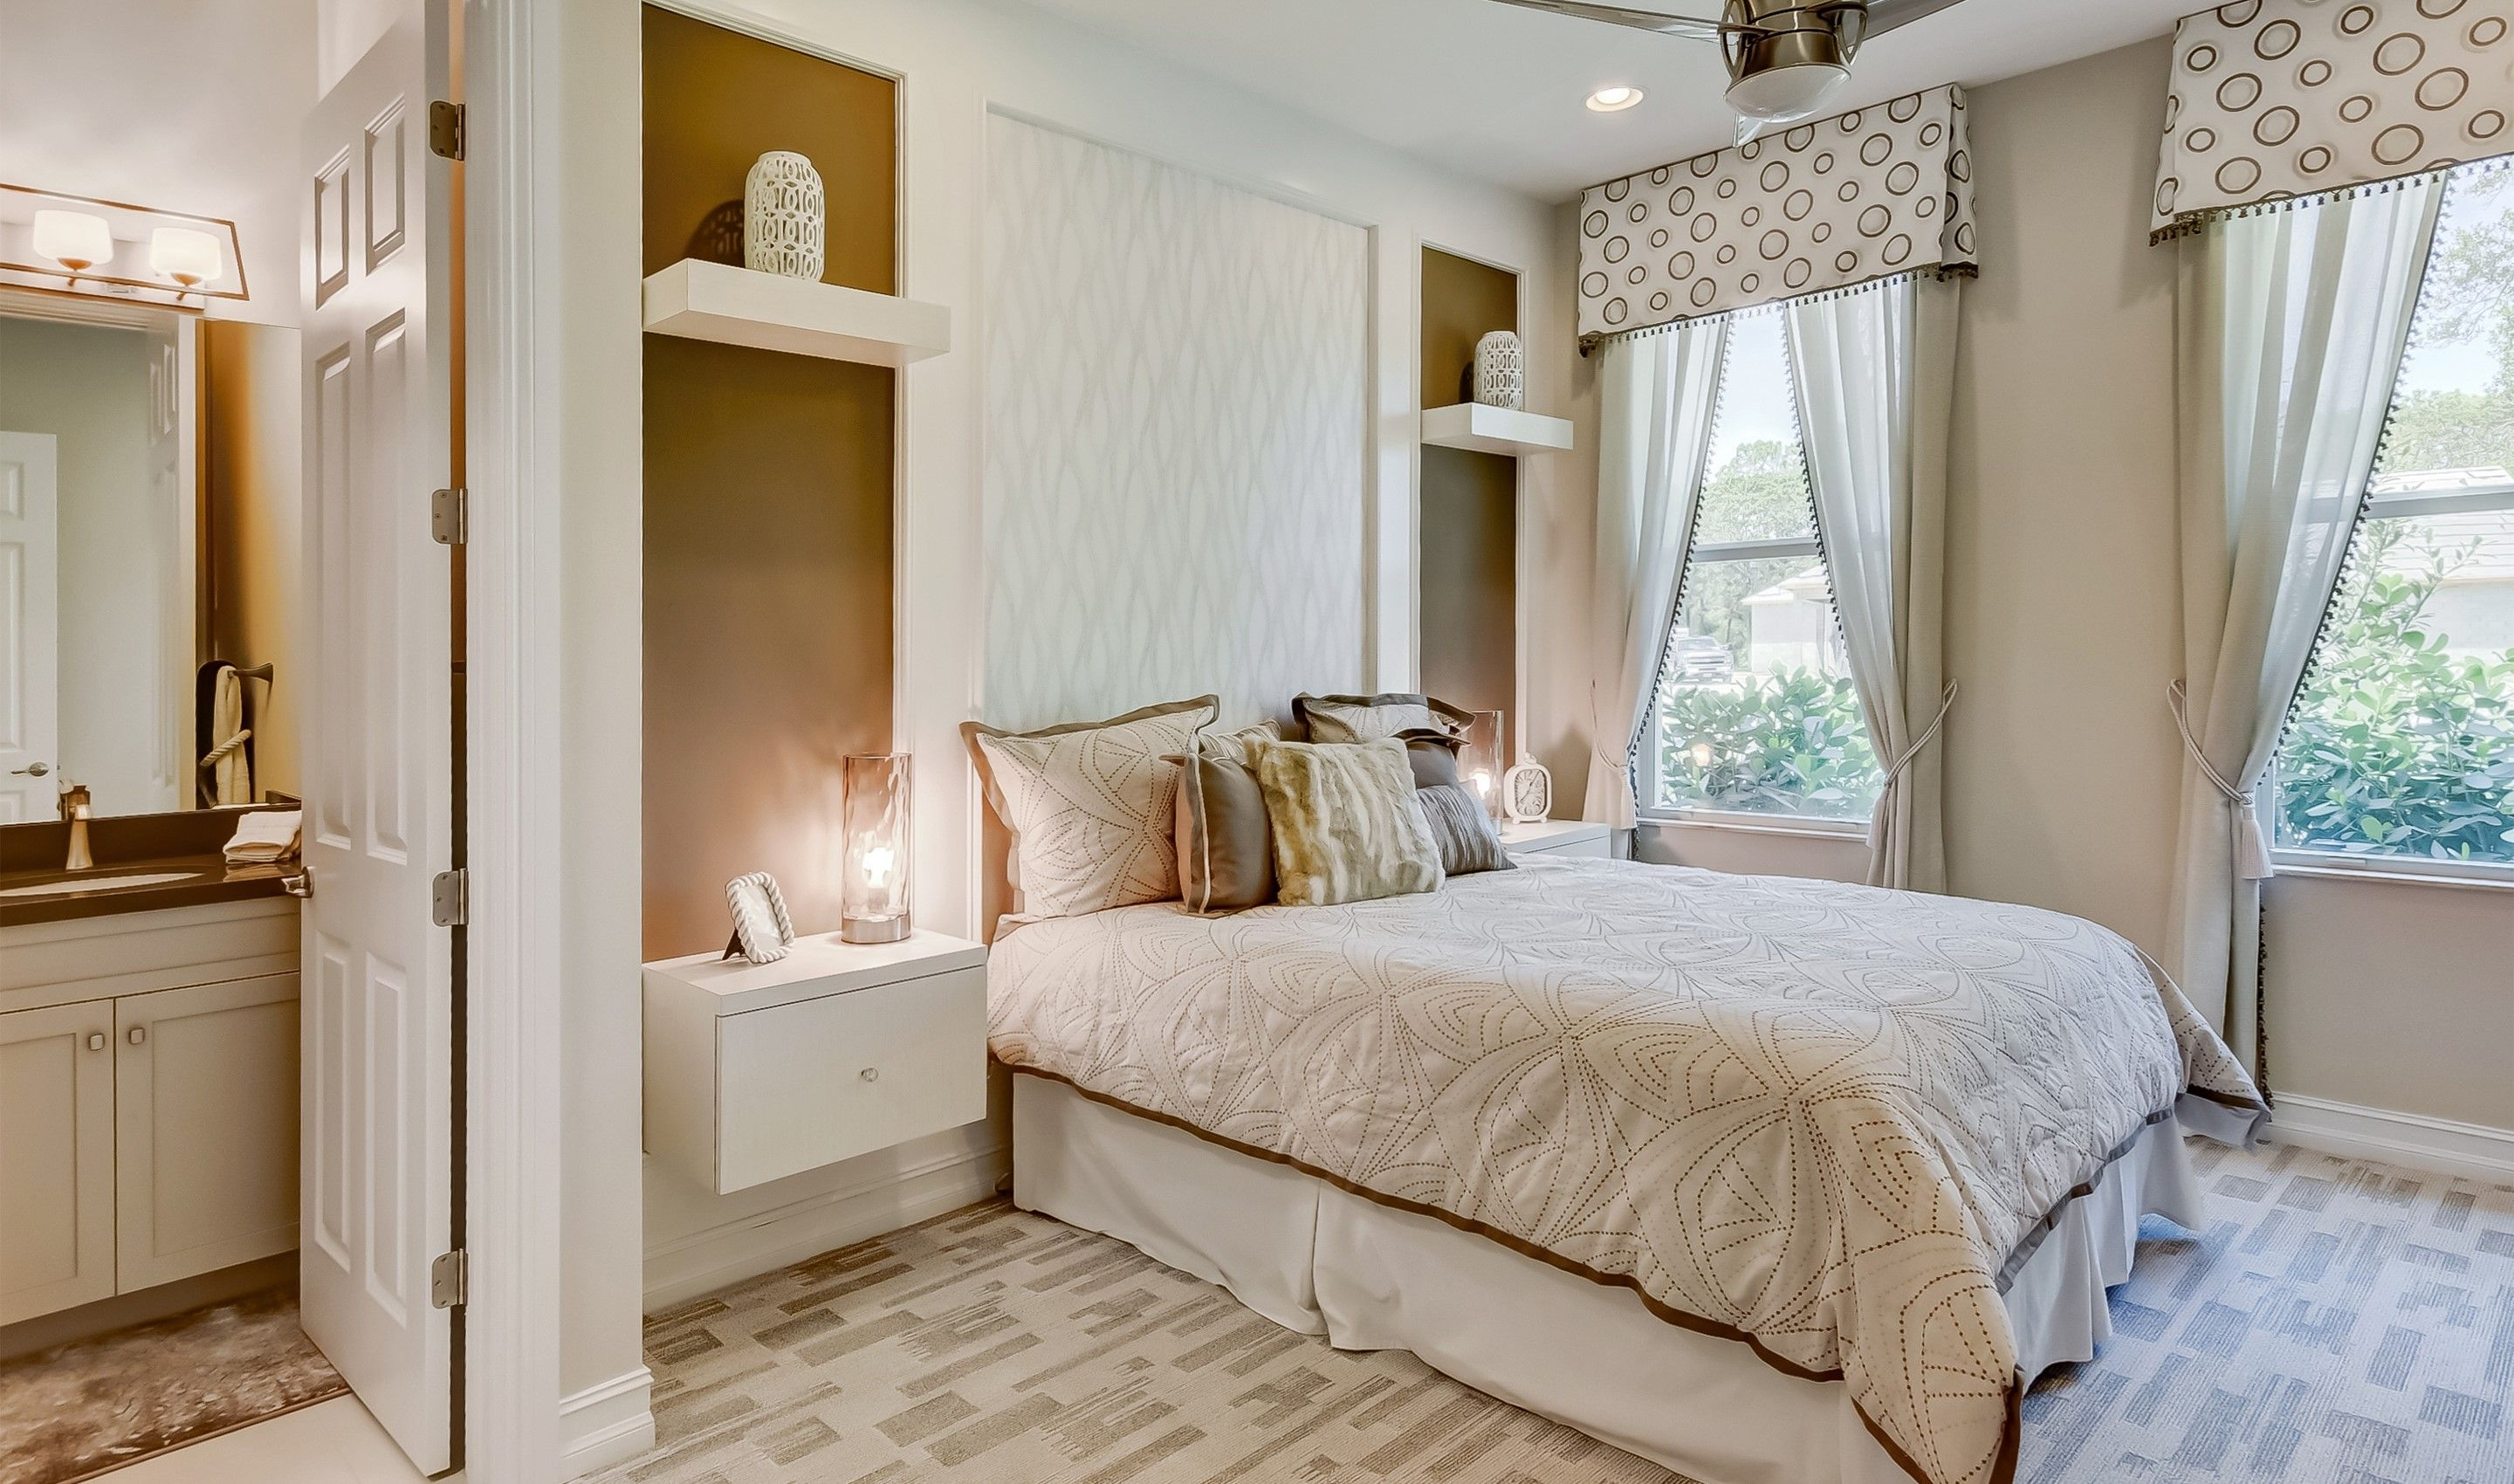 Bedroom featured in the Saffire By K. Hovnanian® Homes in Palm Beach County, FL